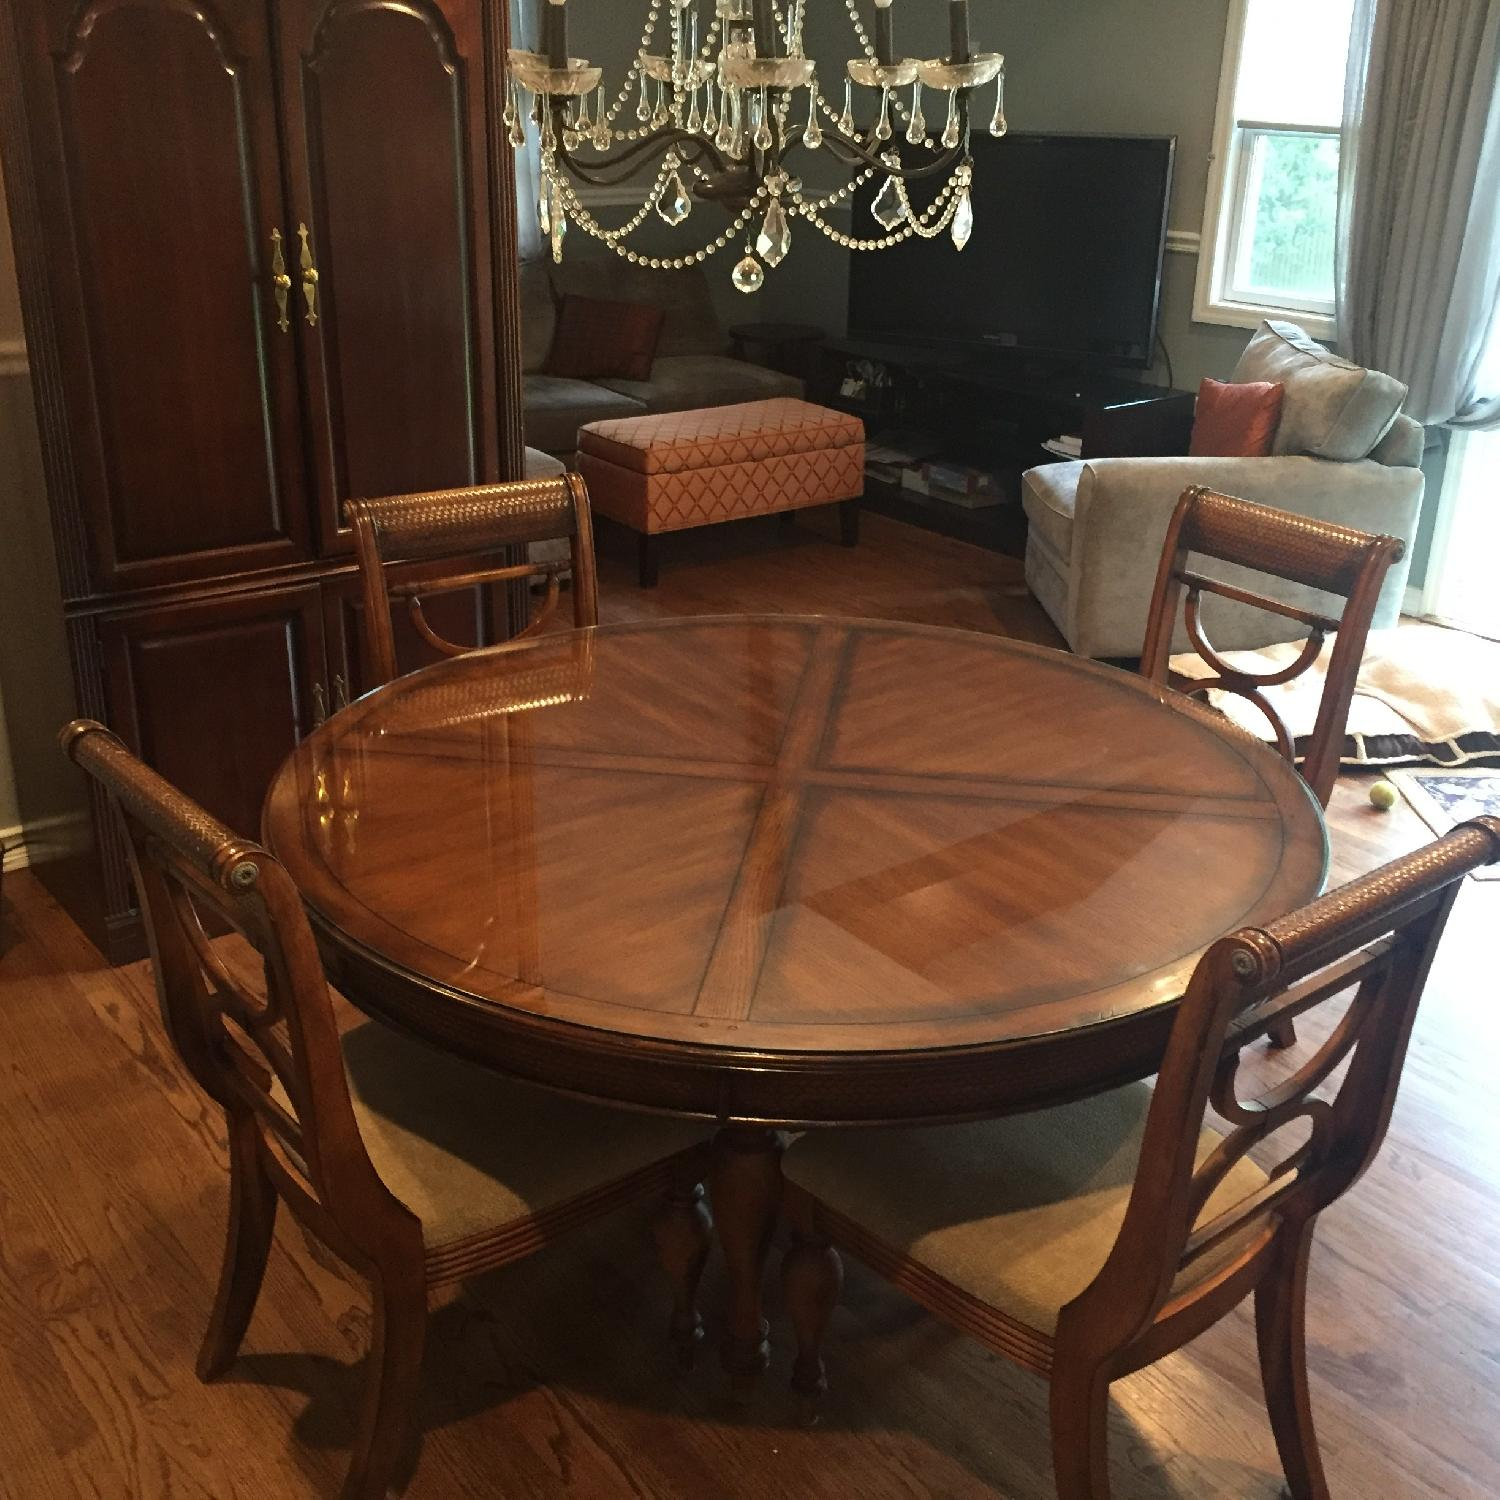 Dining Room Glass Top Round Table w/ 6 Chairs - image-2